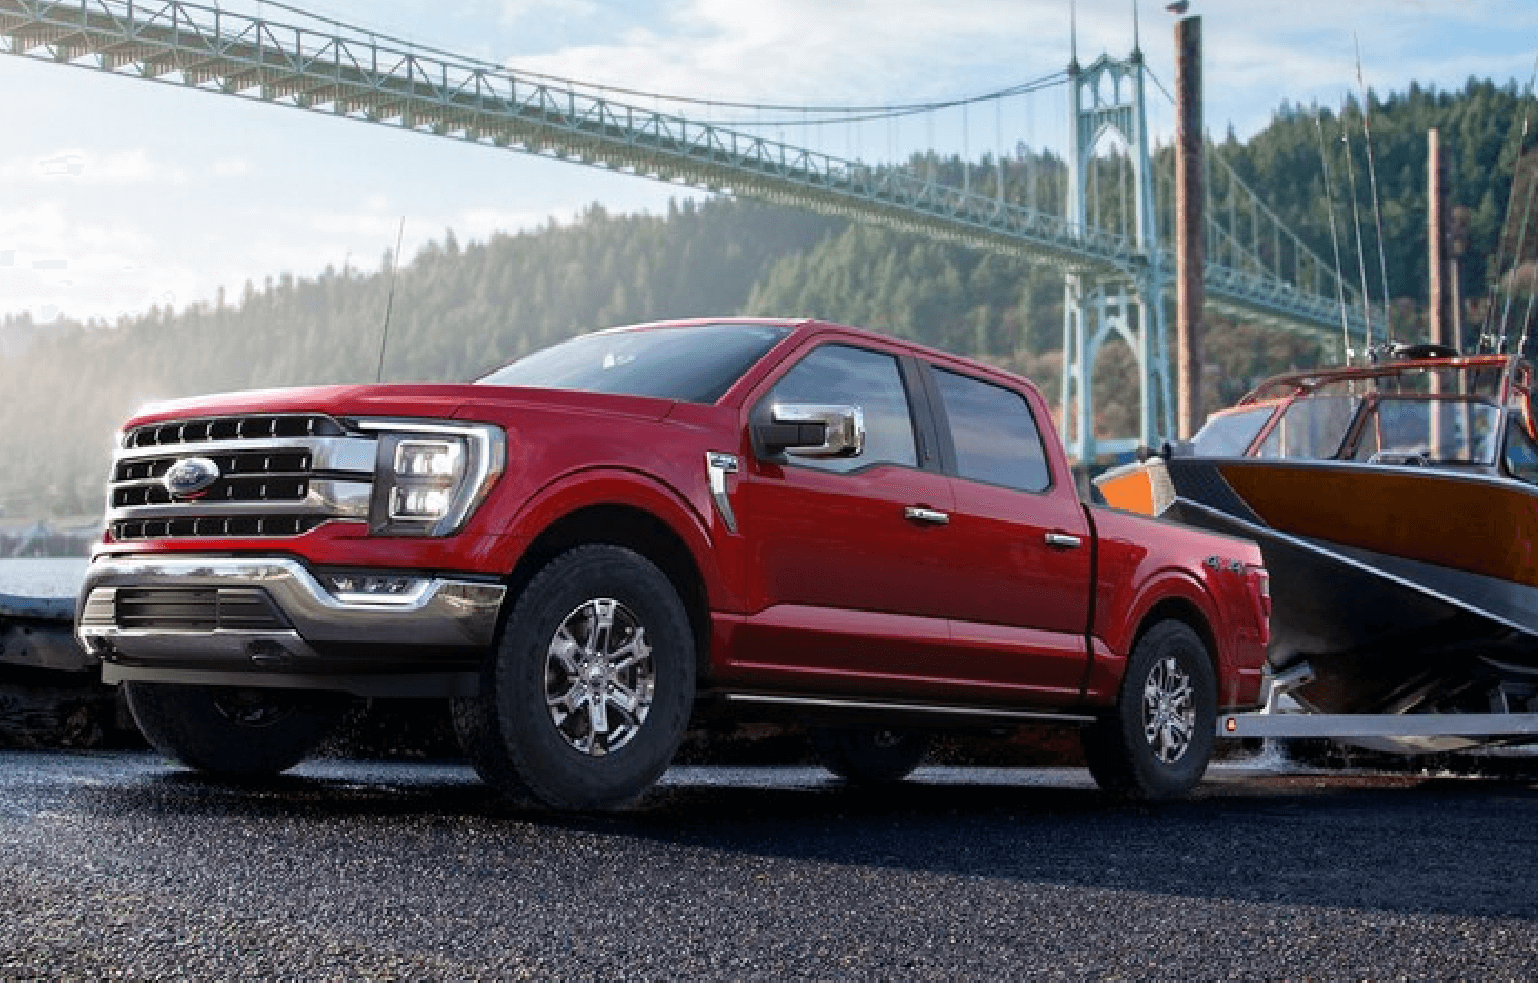 2022: The Year of Electrification for Ford Vehicles